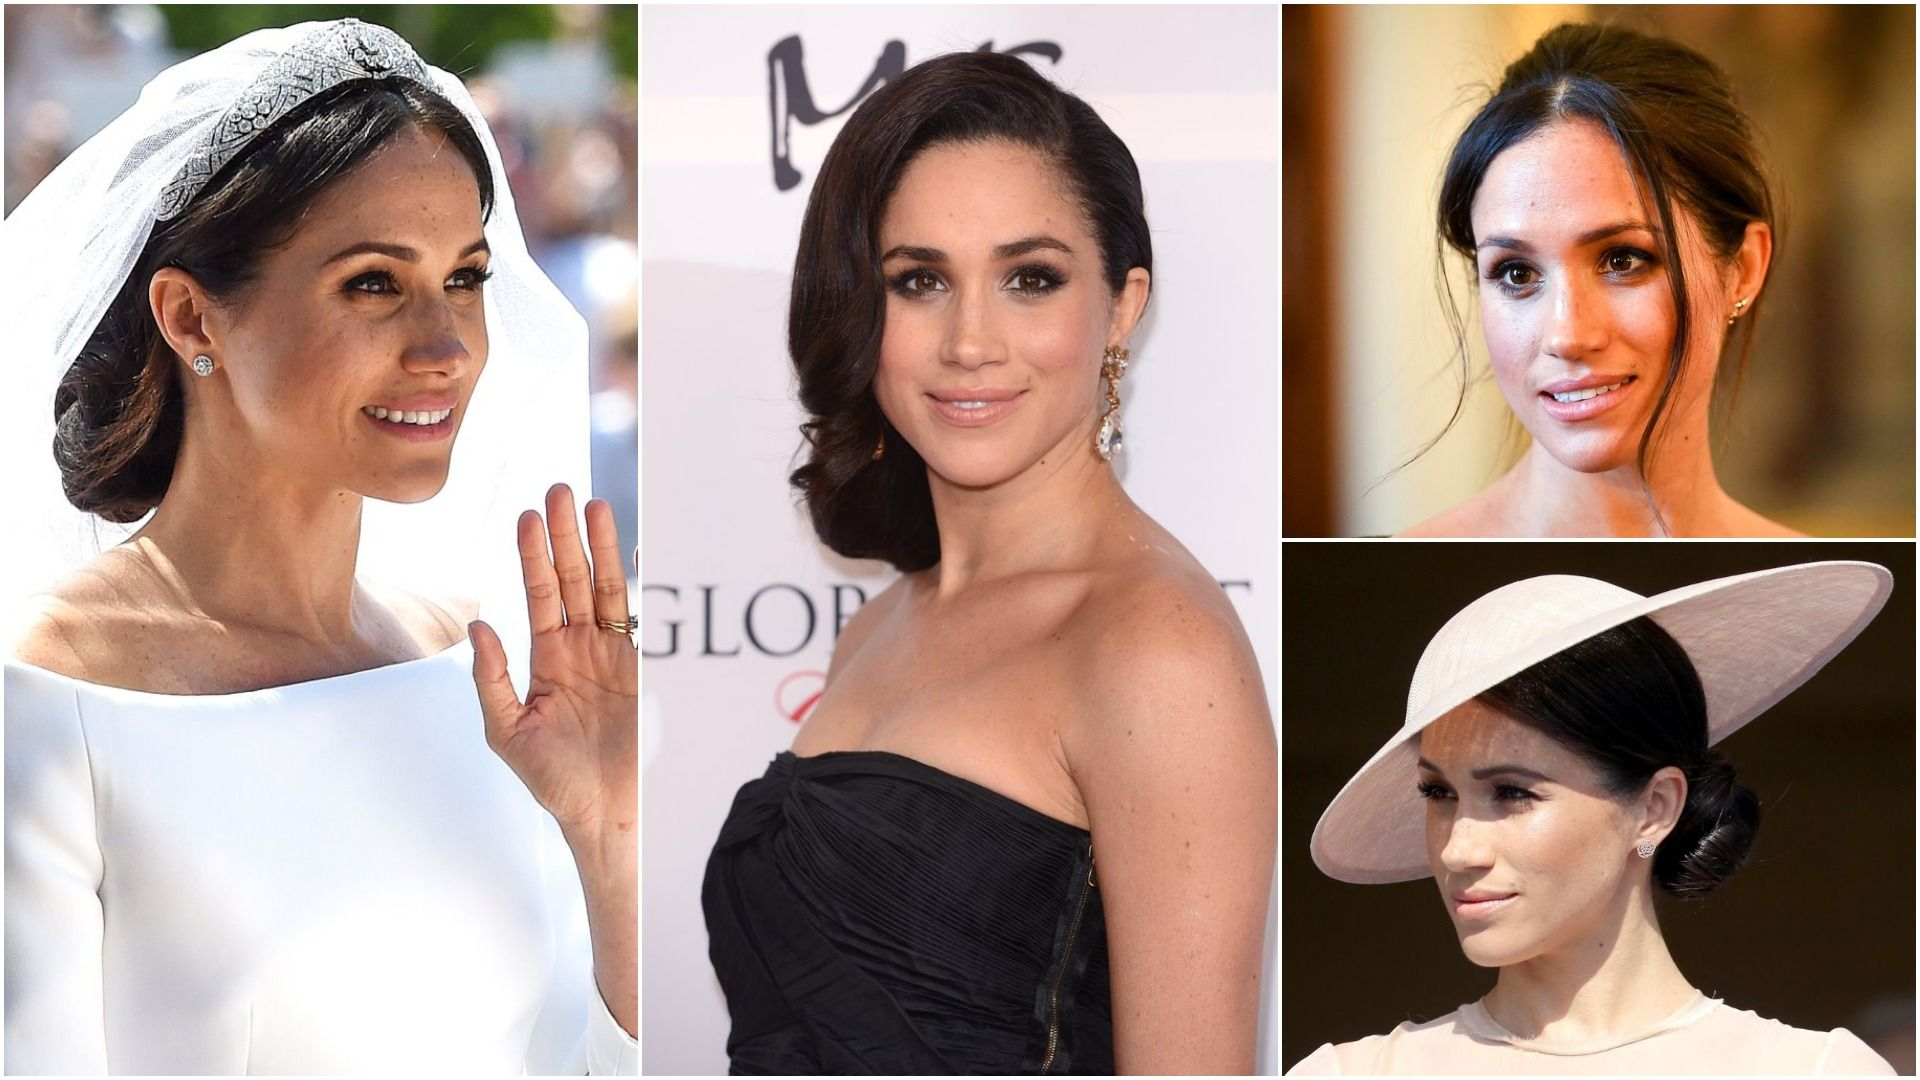 Meghan Markle Haircuts 25 Royal Hair Look Jetzt Zu Kopieren Die Frisur Hair Styles Hair Looks Cool Hairstyles